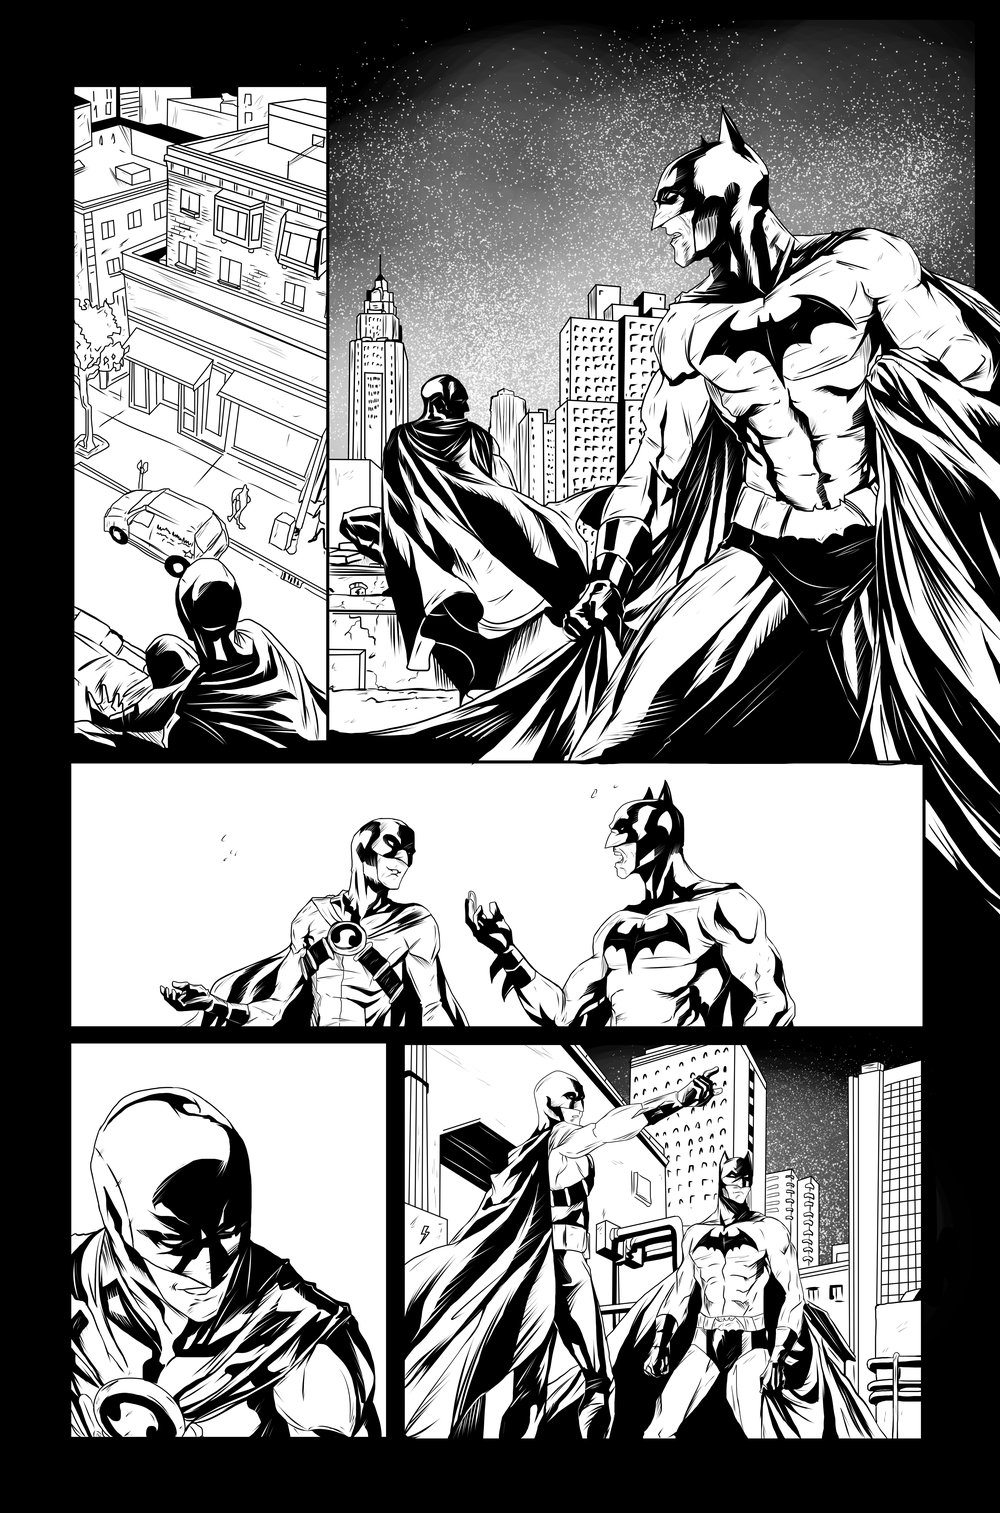 Pencils- Marcus To  Inks- Me